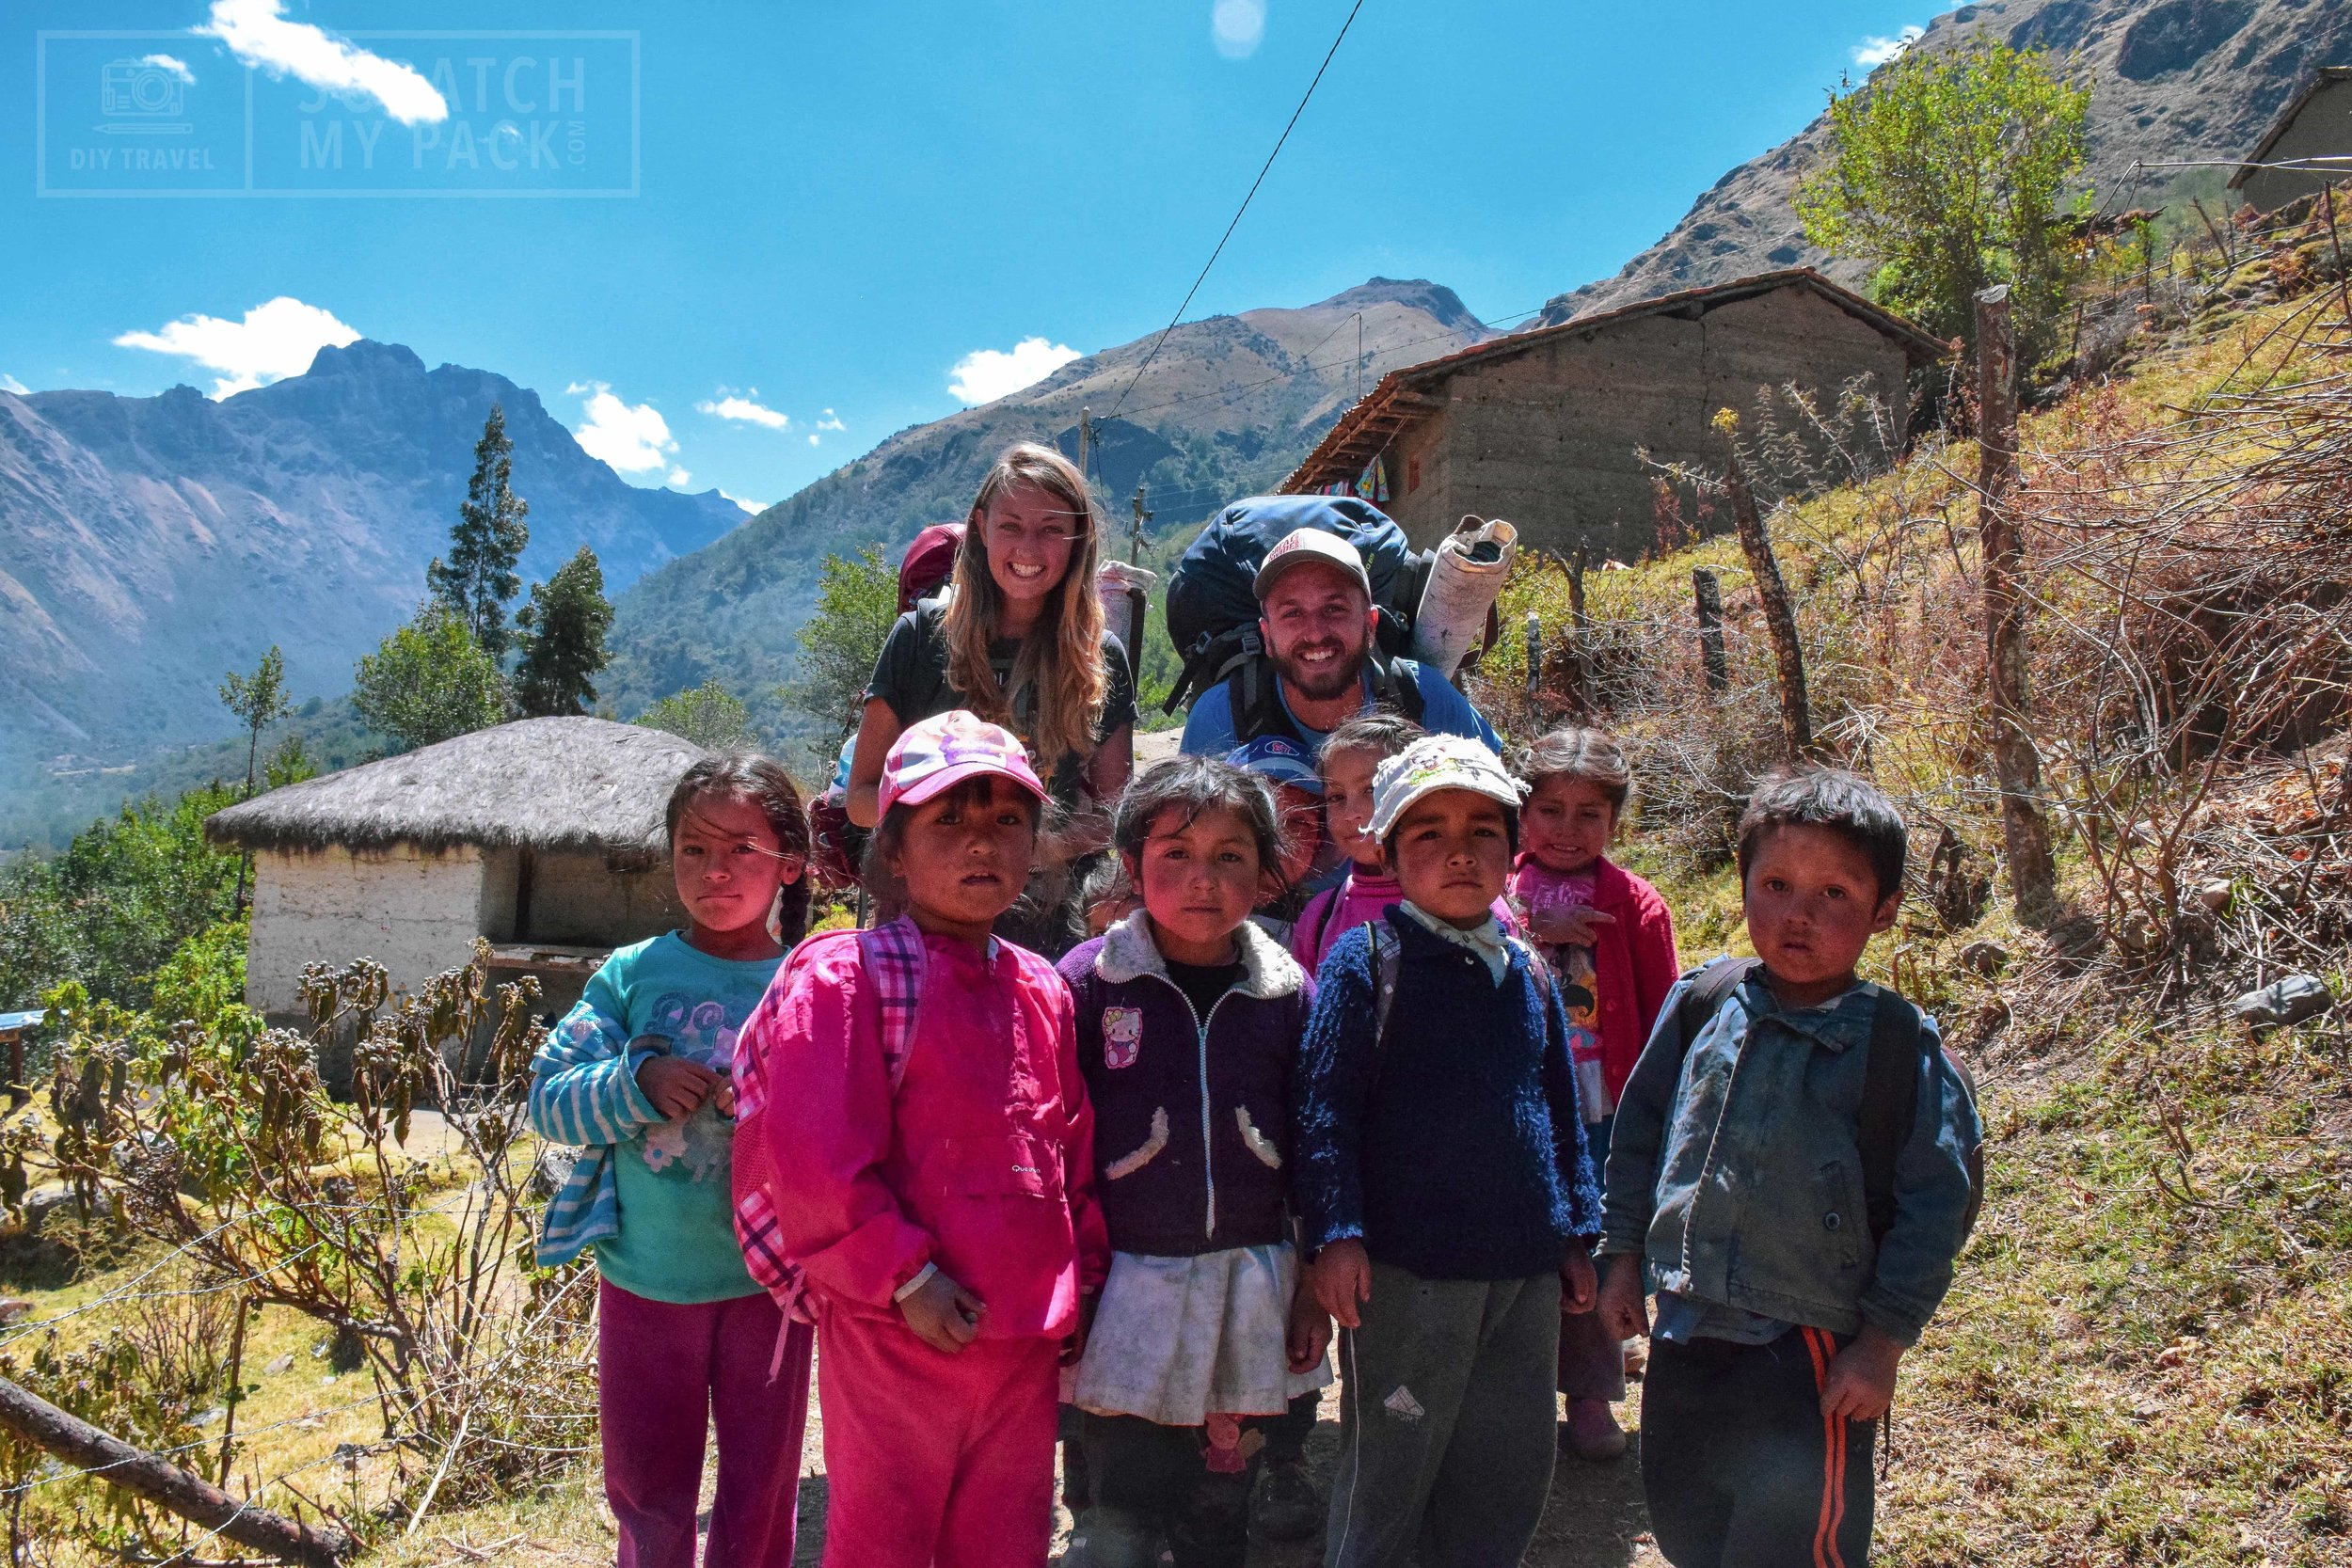 Local kids at the start of our trek